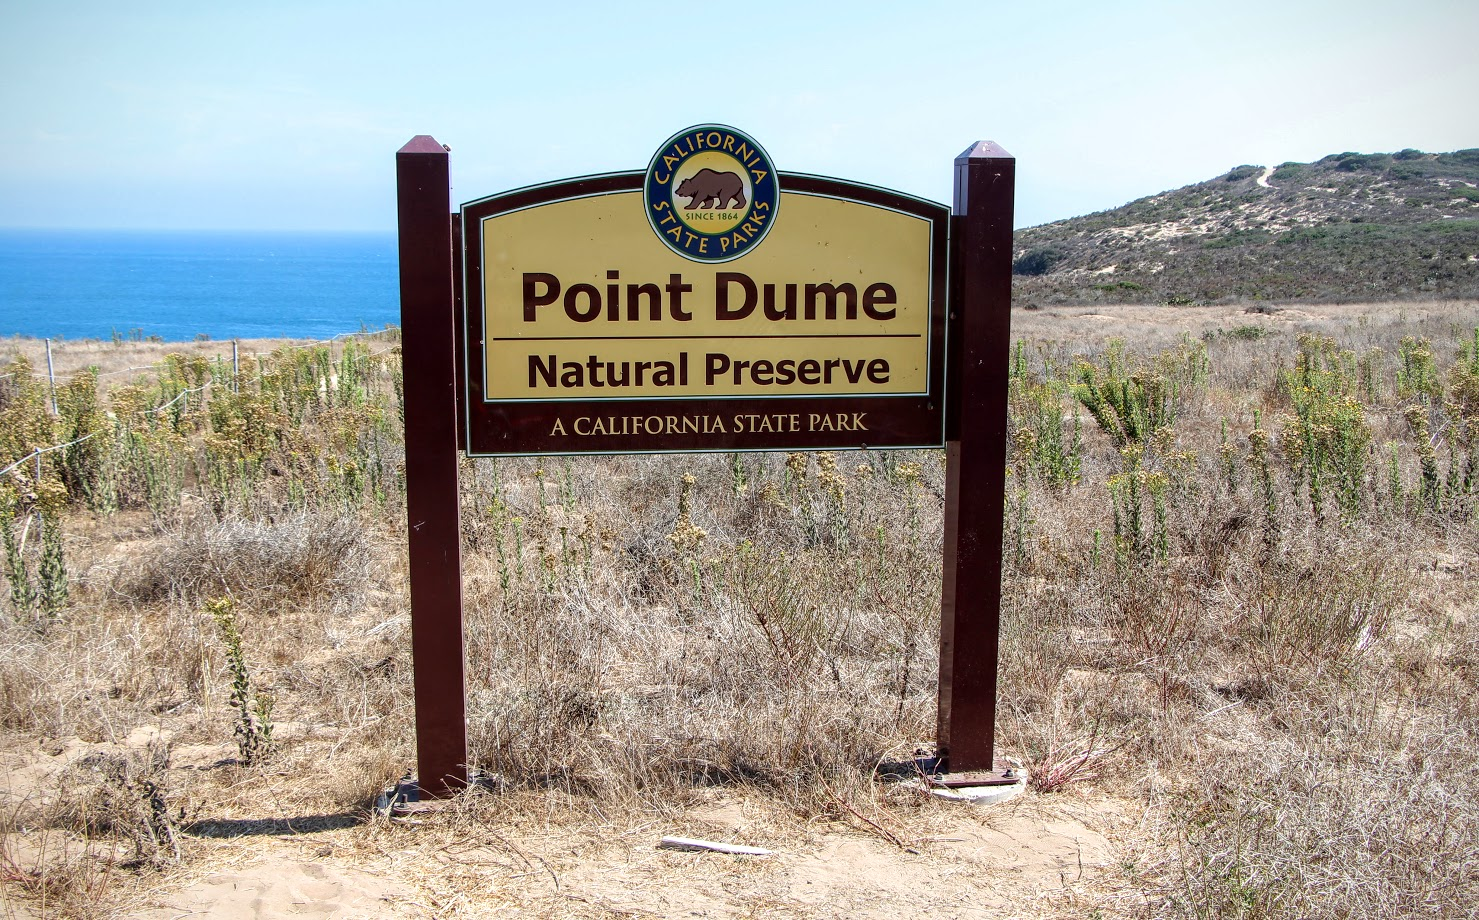 Point Dume: Biking The Legendary PCH From Santa Monica To Malibu